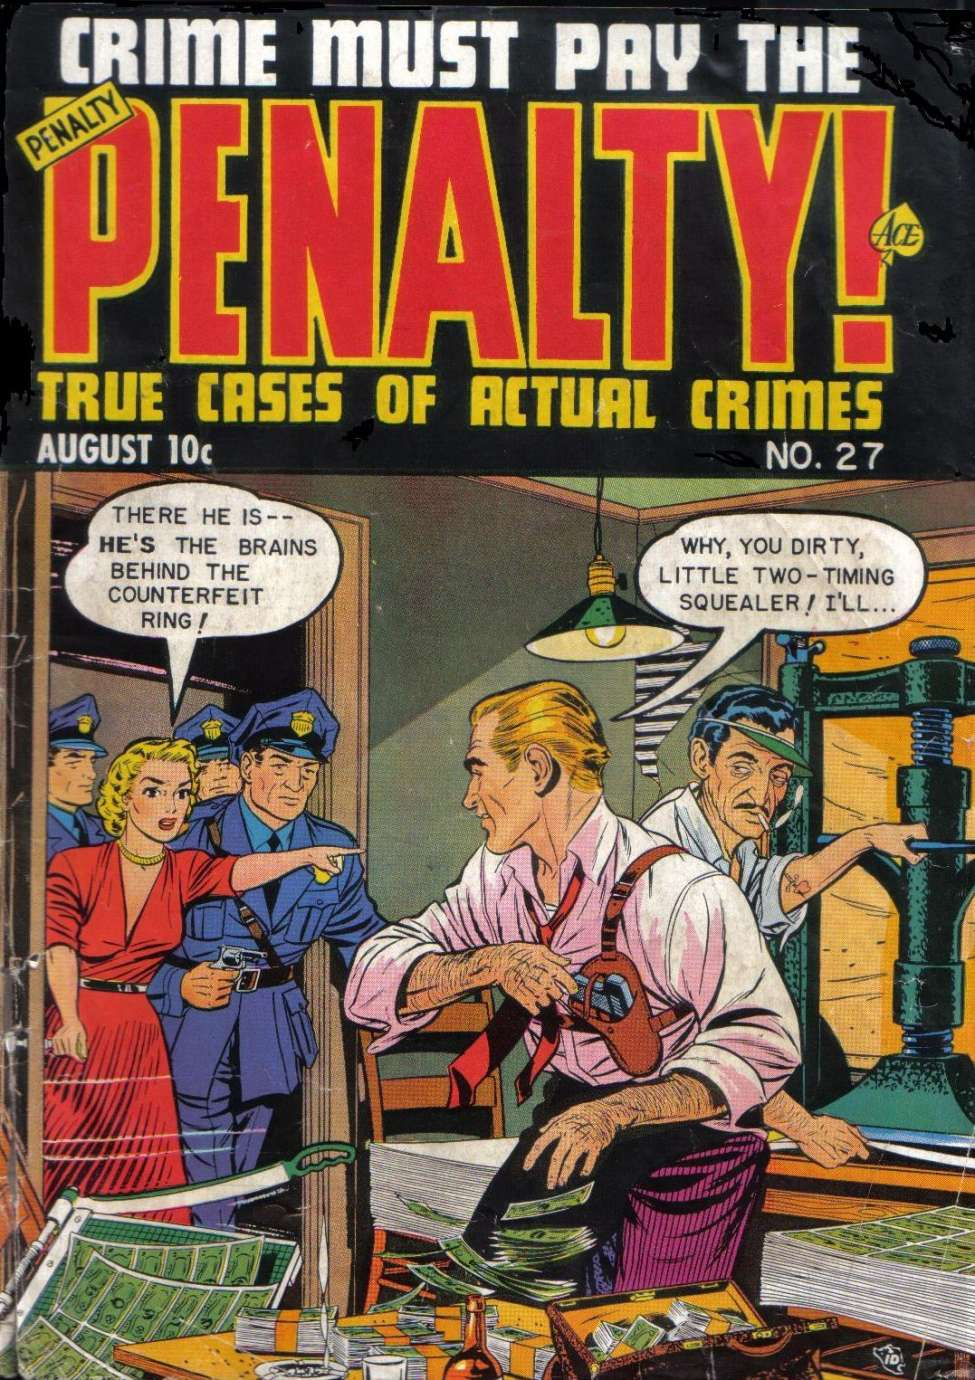 Crime Must Pay the Penalty #27 by Ace